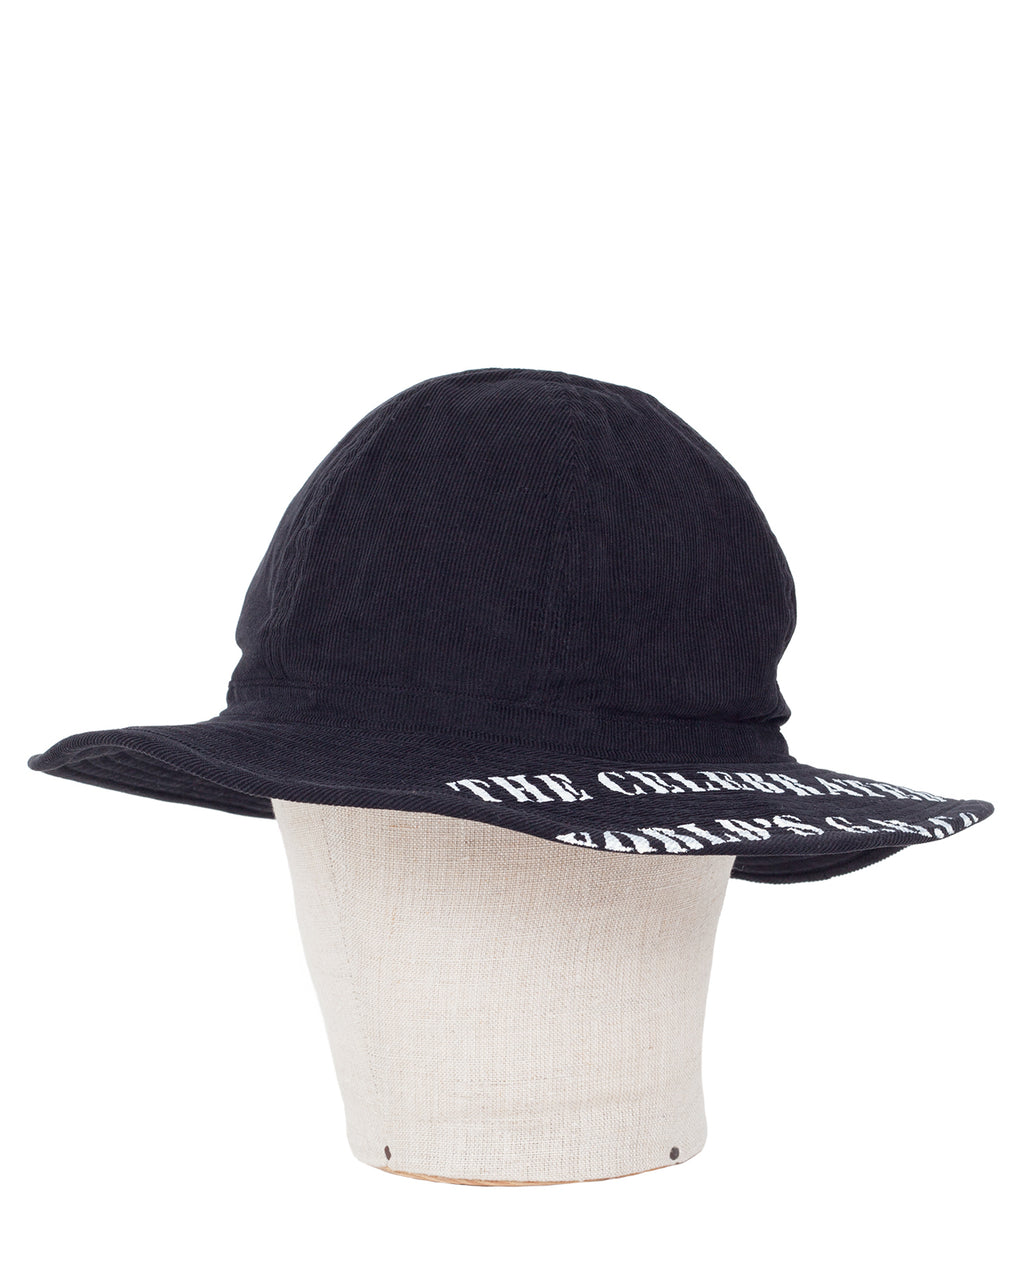 By Glad Hand, Gladden, Corduroy Hat, Black